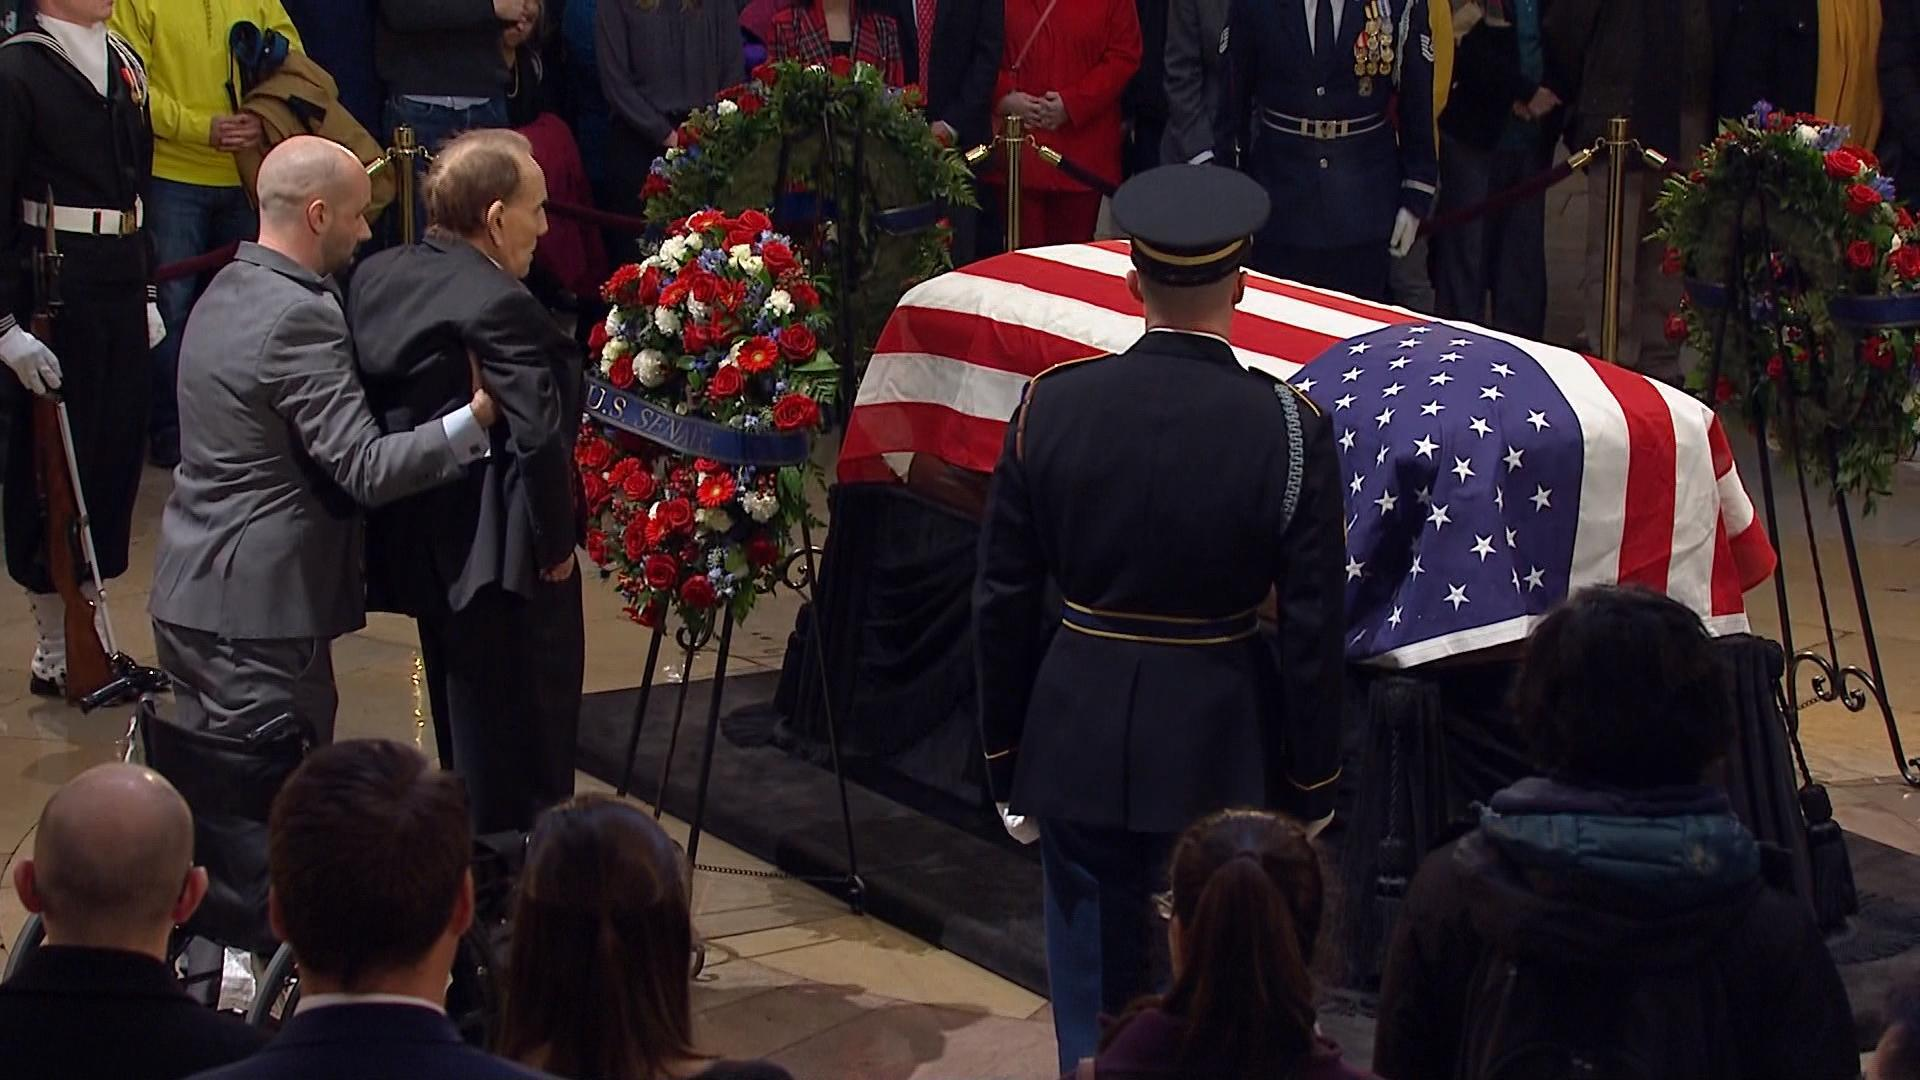 Watch Bob Dole salute George H.W. Bush's casket in powerful moment at Capitol